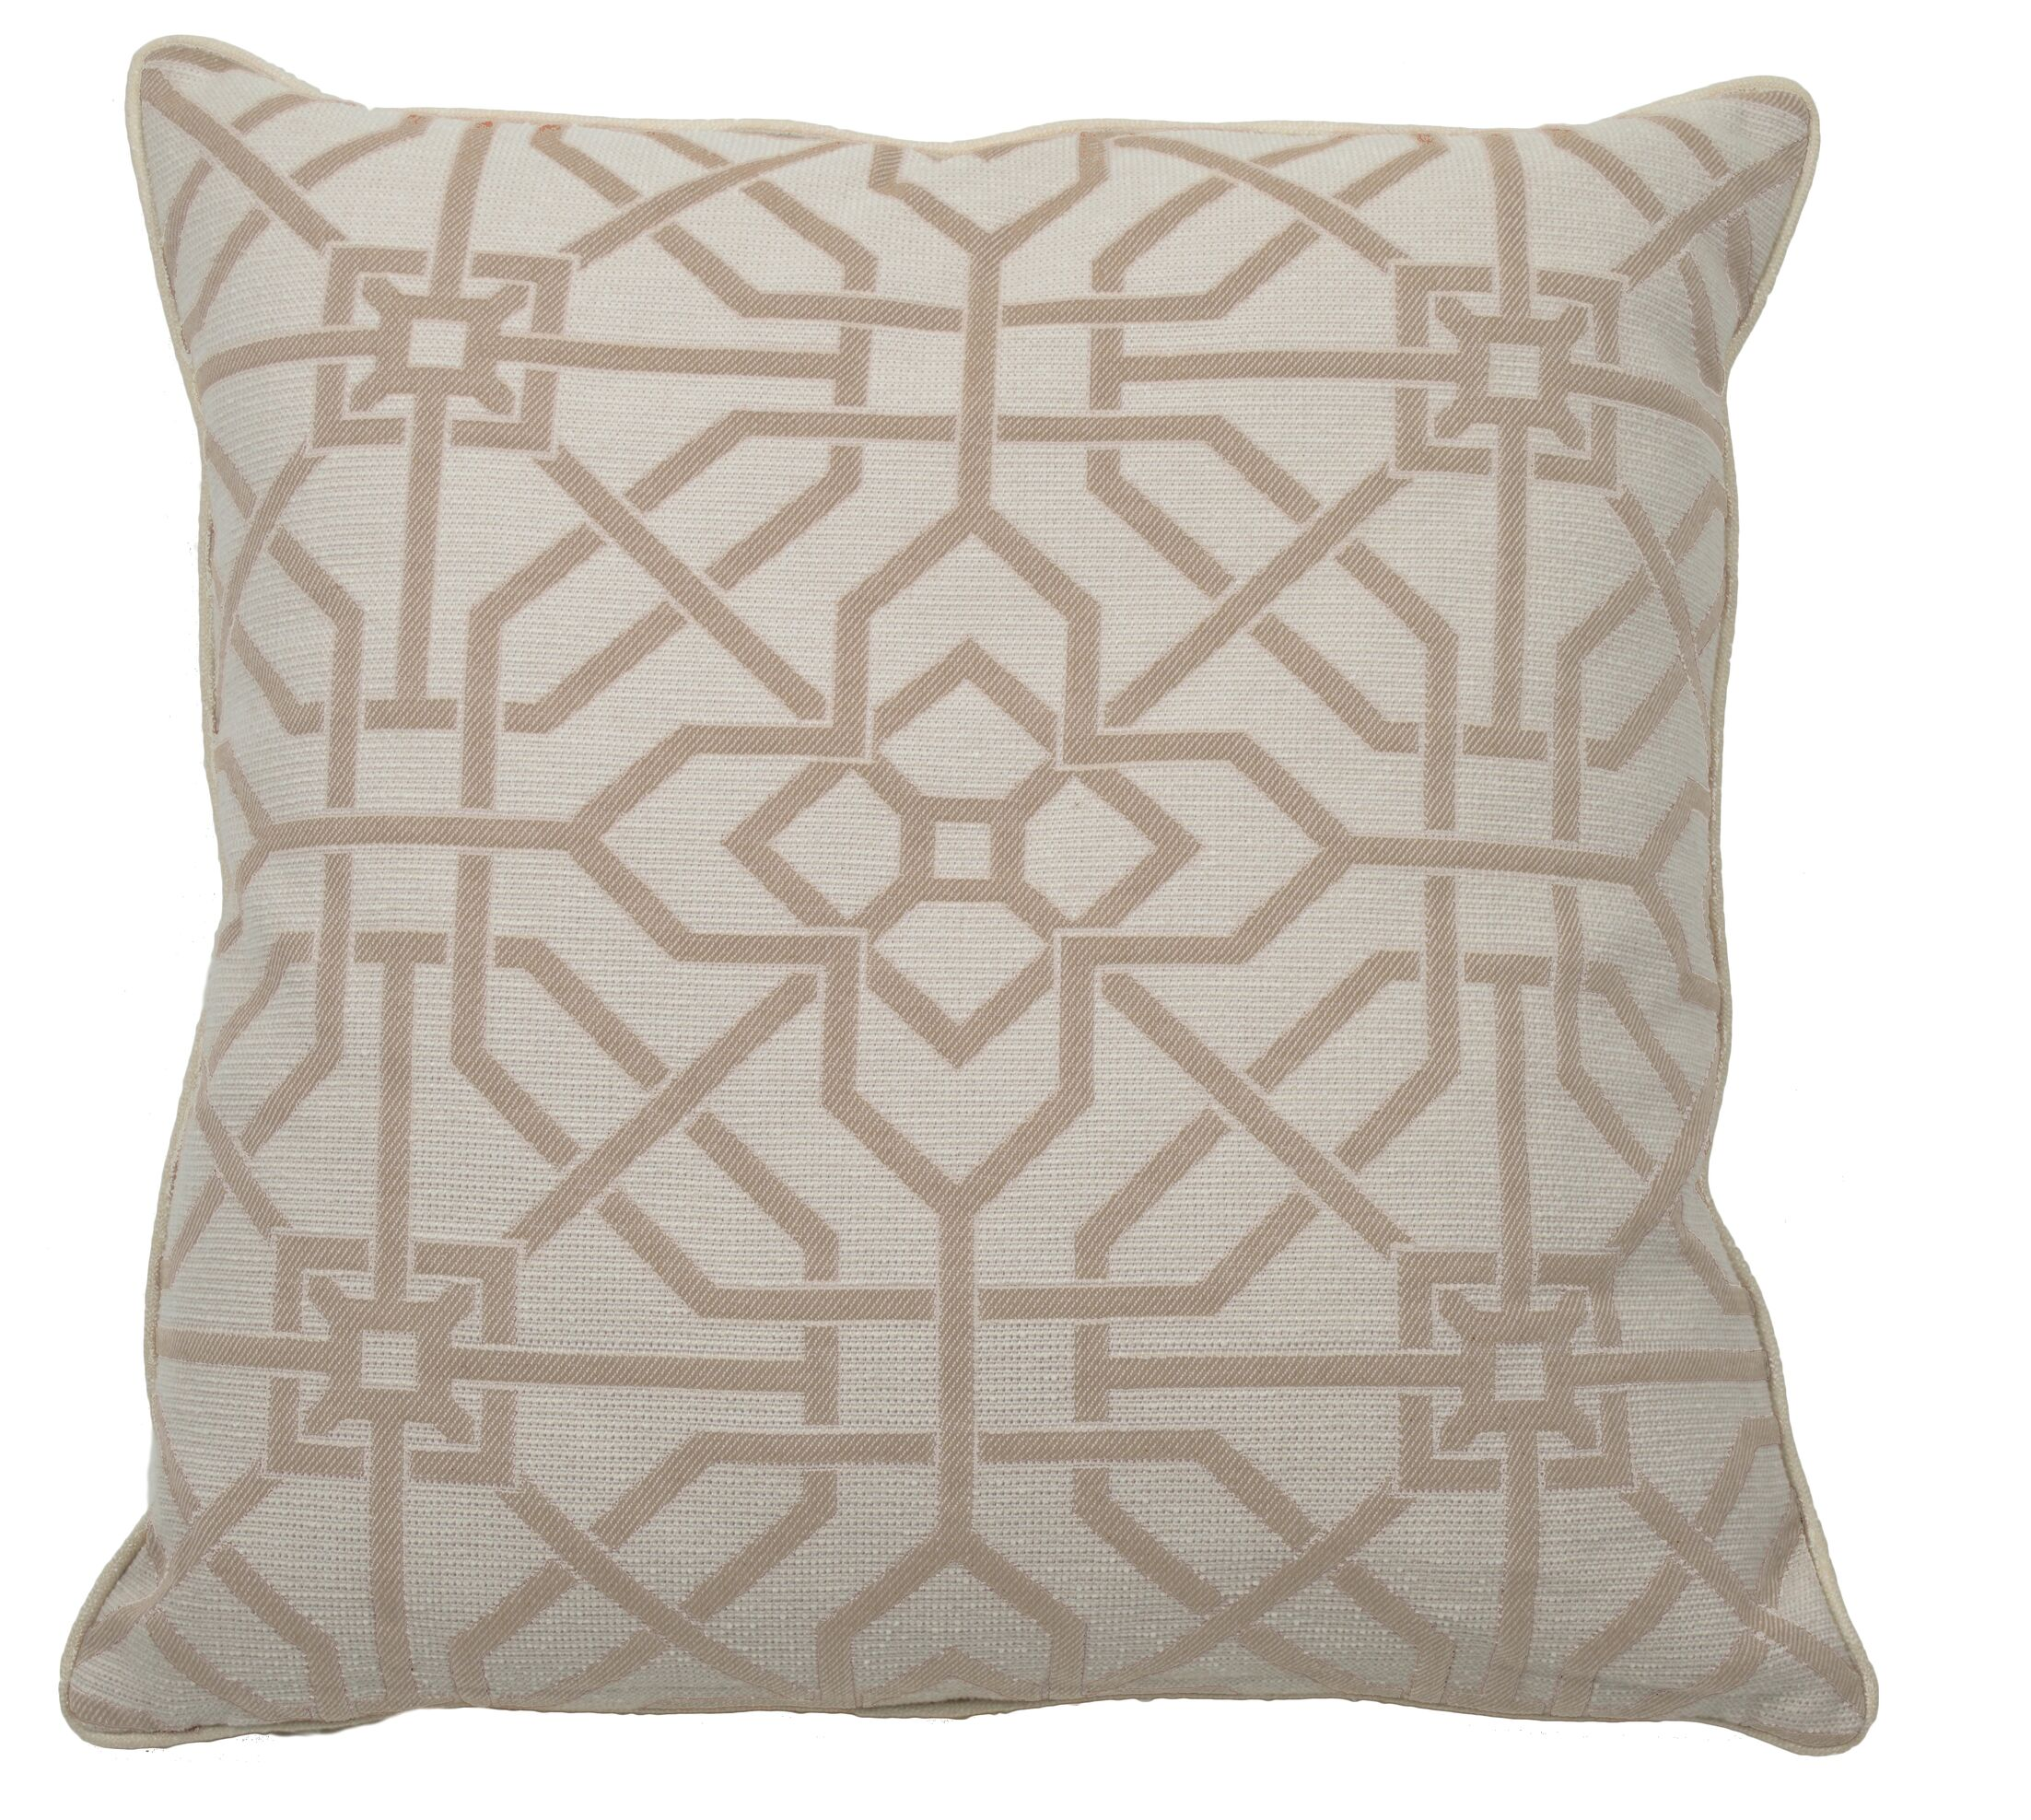 Port Palace Indoor/Outdoor Throw Pillow (Set of 2) Color: Almond, Size: 22